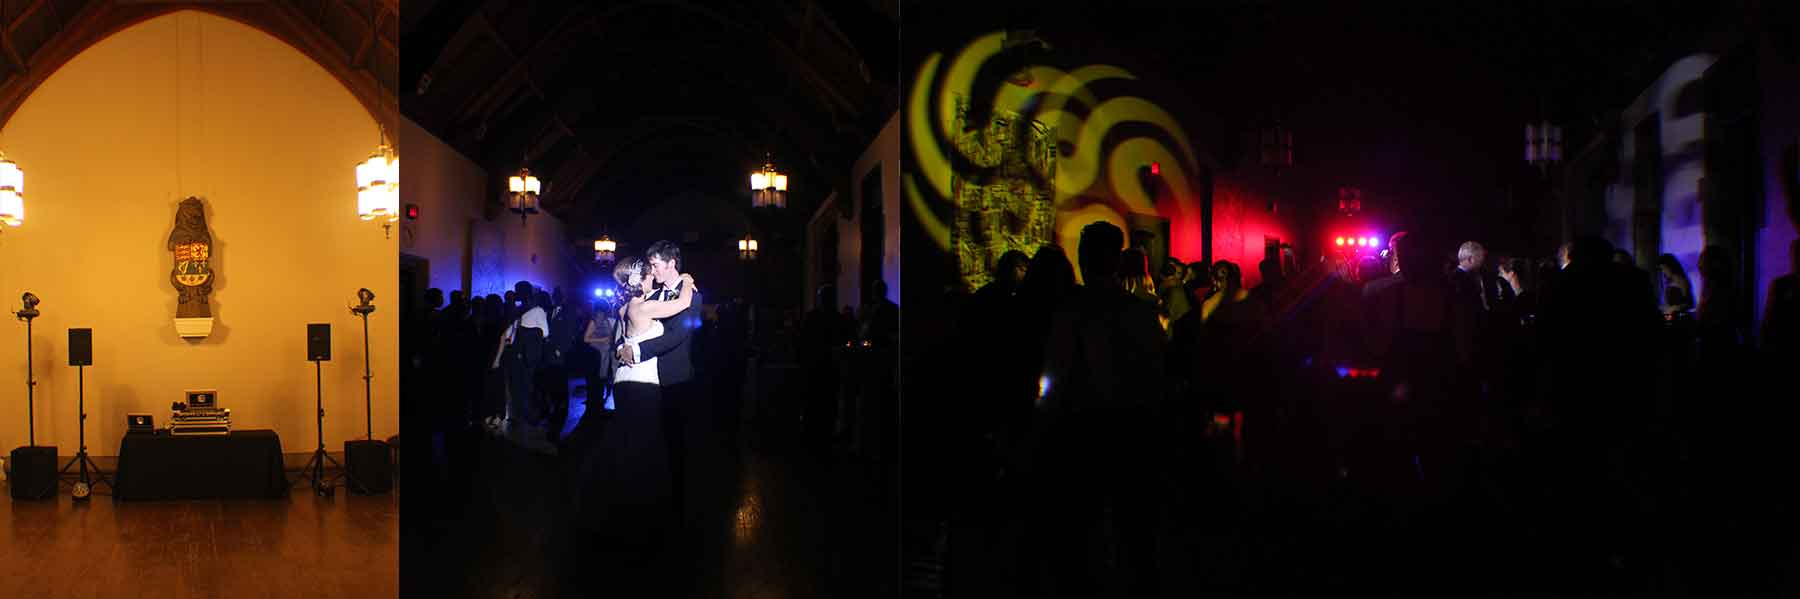 Hart House Toronto Wedding DJ, Wedding Dj Toronto at Hart House